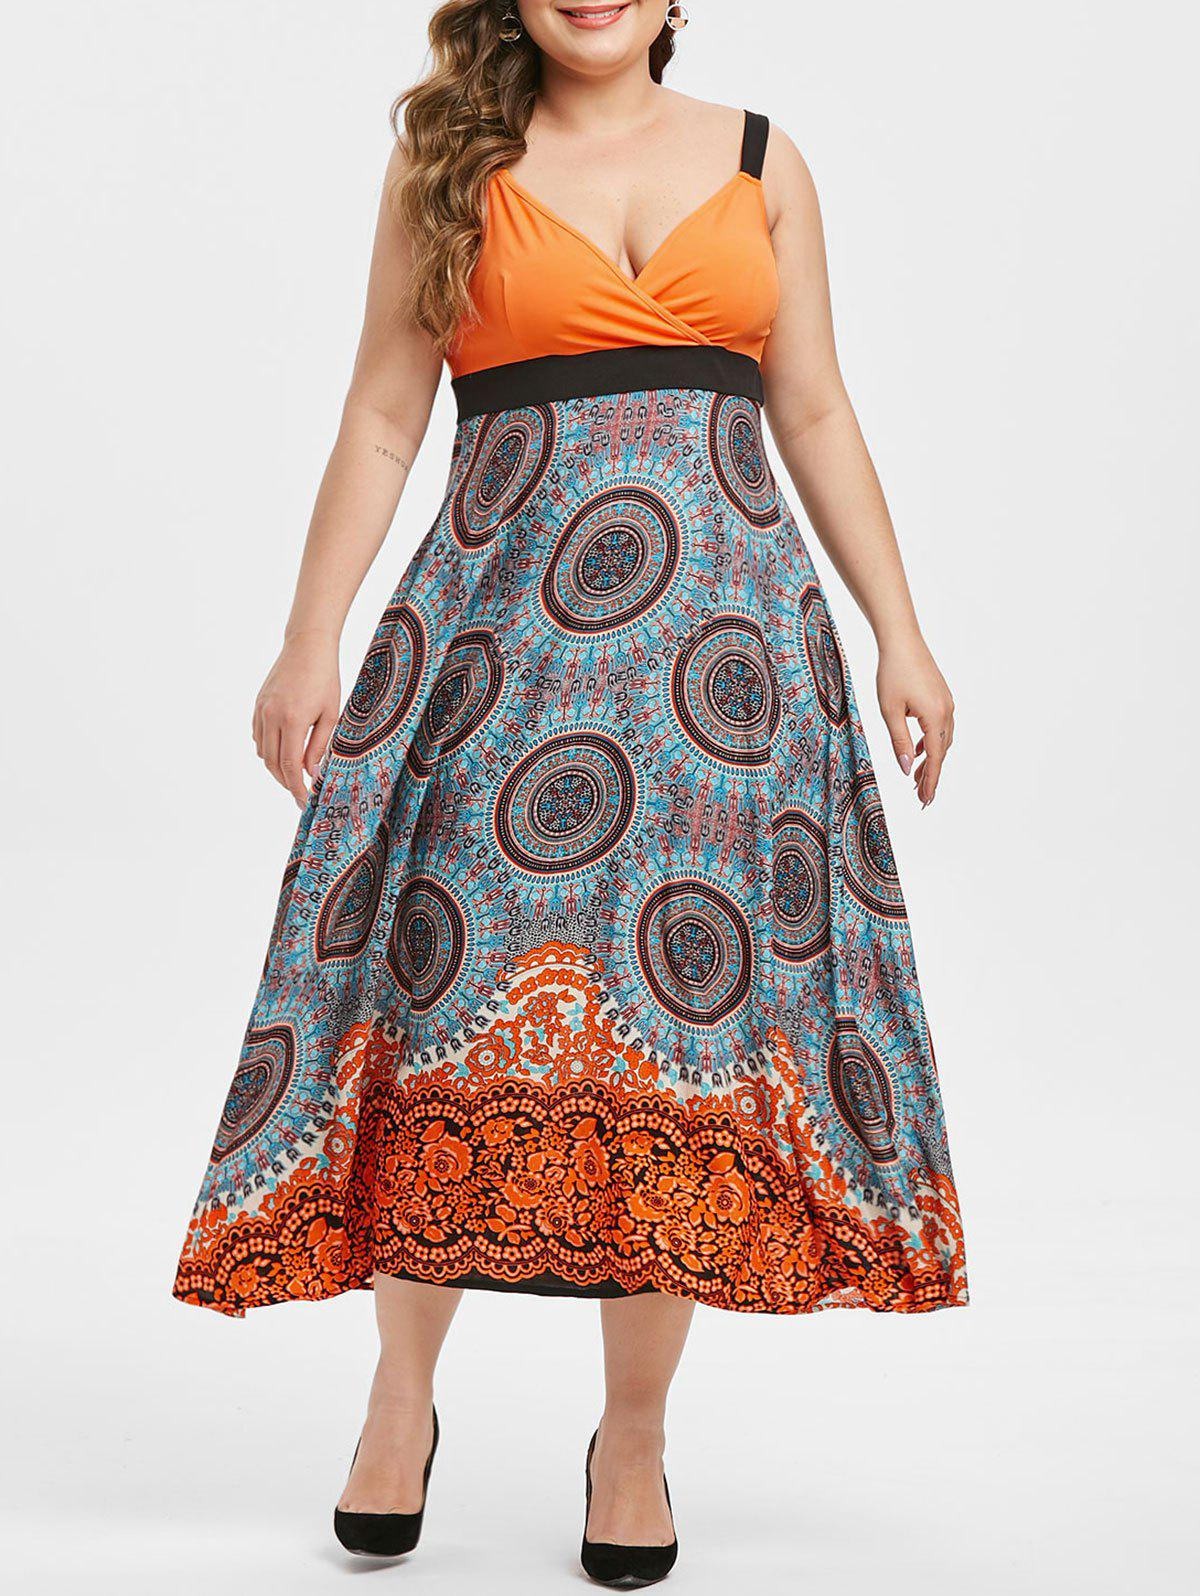 Printed Side Zipper Surplice Plus Size Midi Dress - ORANGE 3X